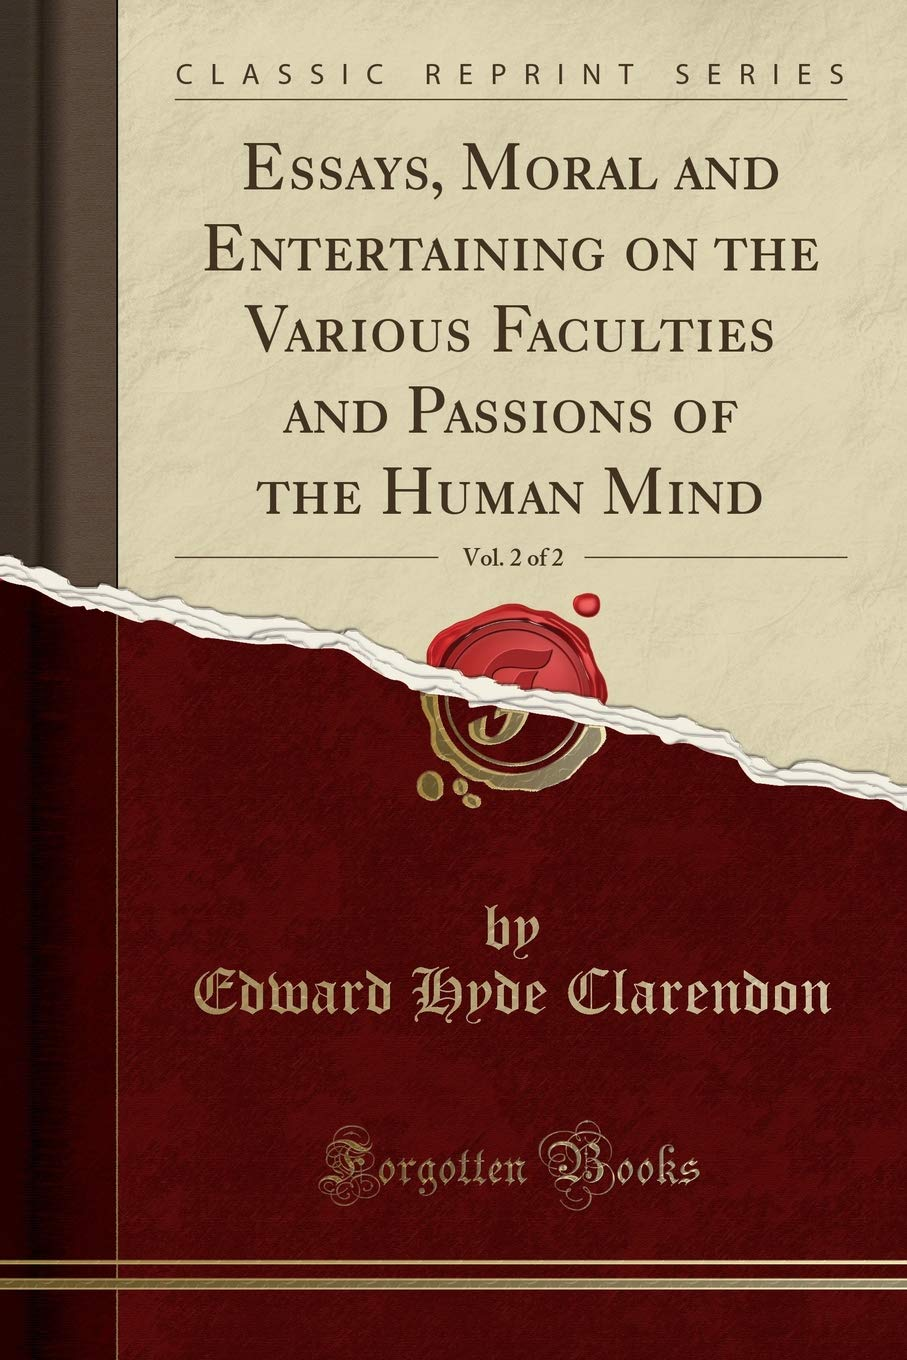 Essays, Moral and Entertaining on the Various Faculties and Passions of the Human Mind, Vol. 2 of 2 (Classic Reprint) Paperback – January 18, 2018